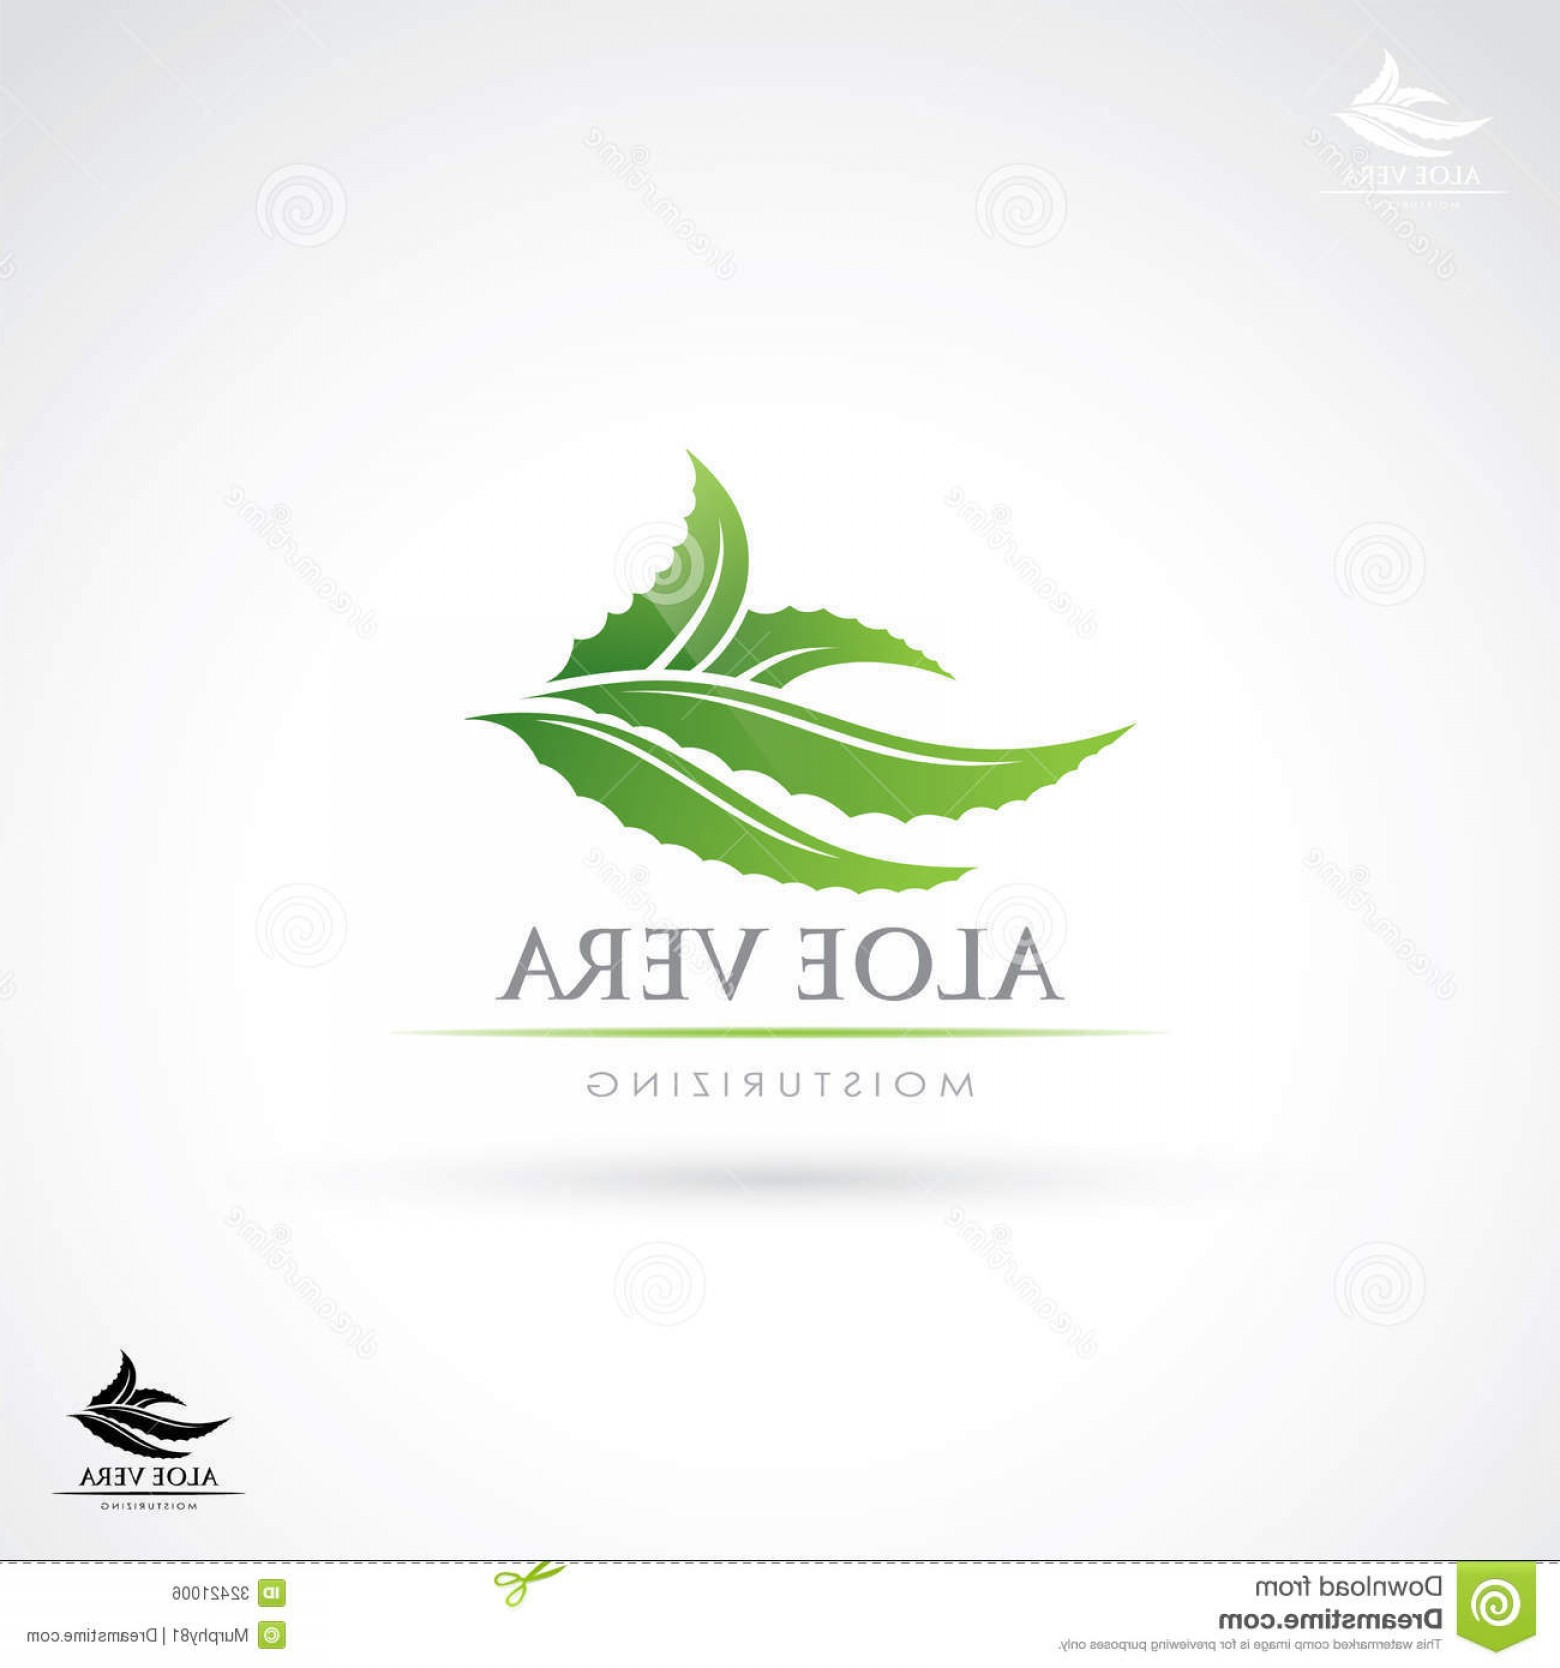 Aloe Vector Graphics: Royalty Free Stock Image Aloe Vera Label Vector Illustration Sign Image